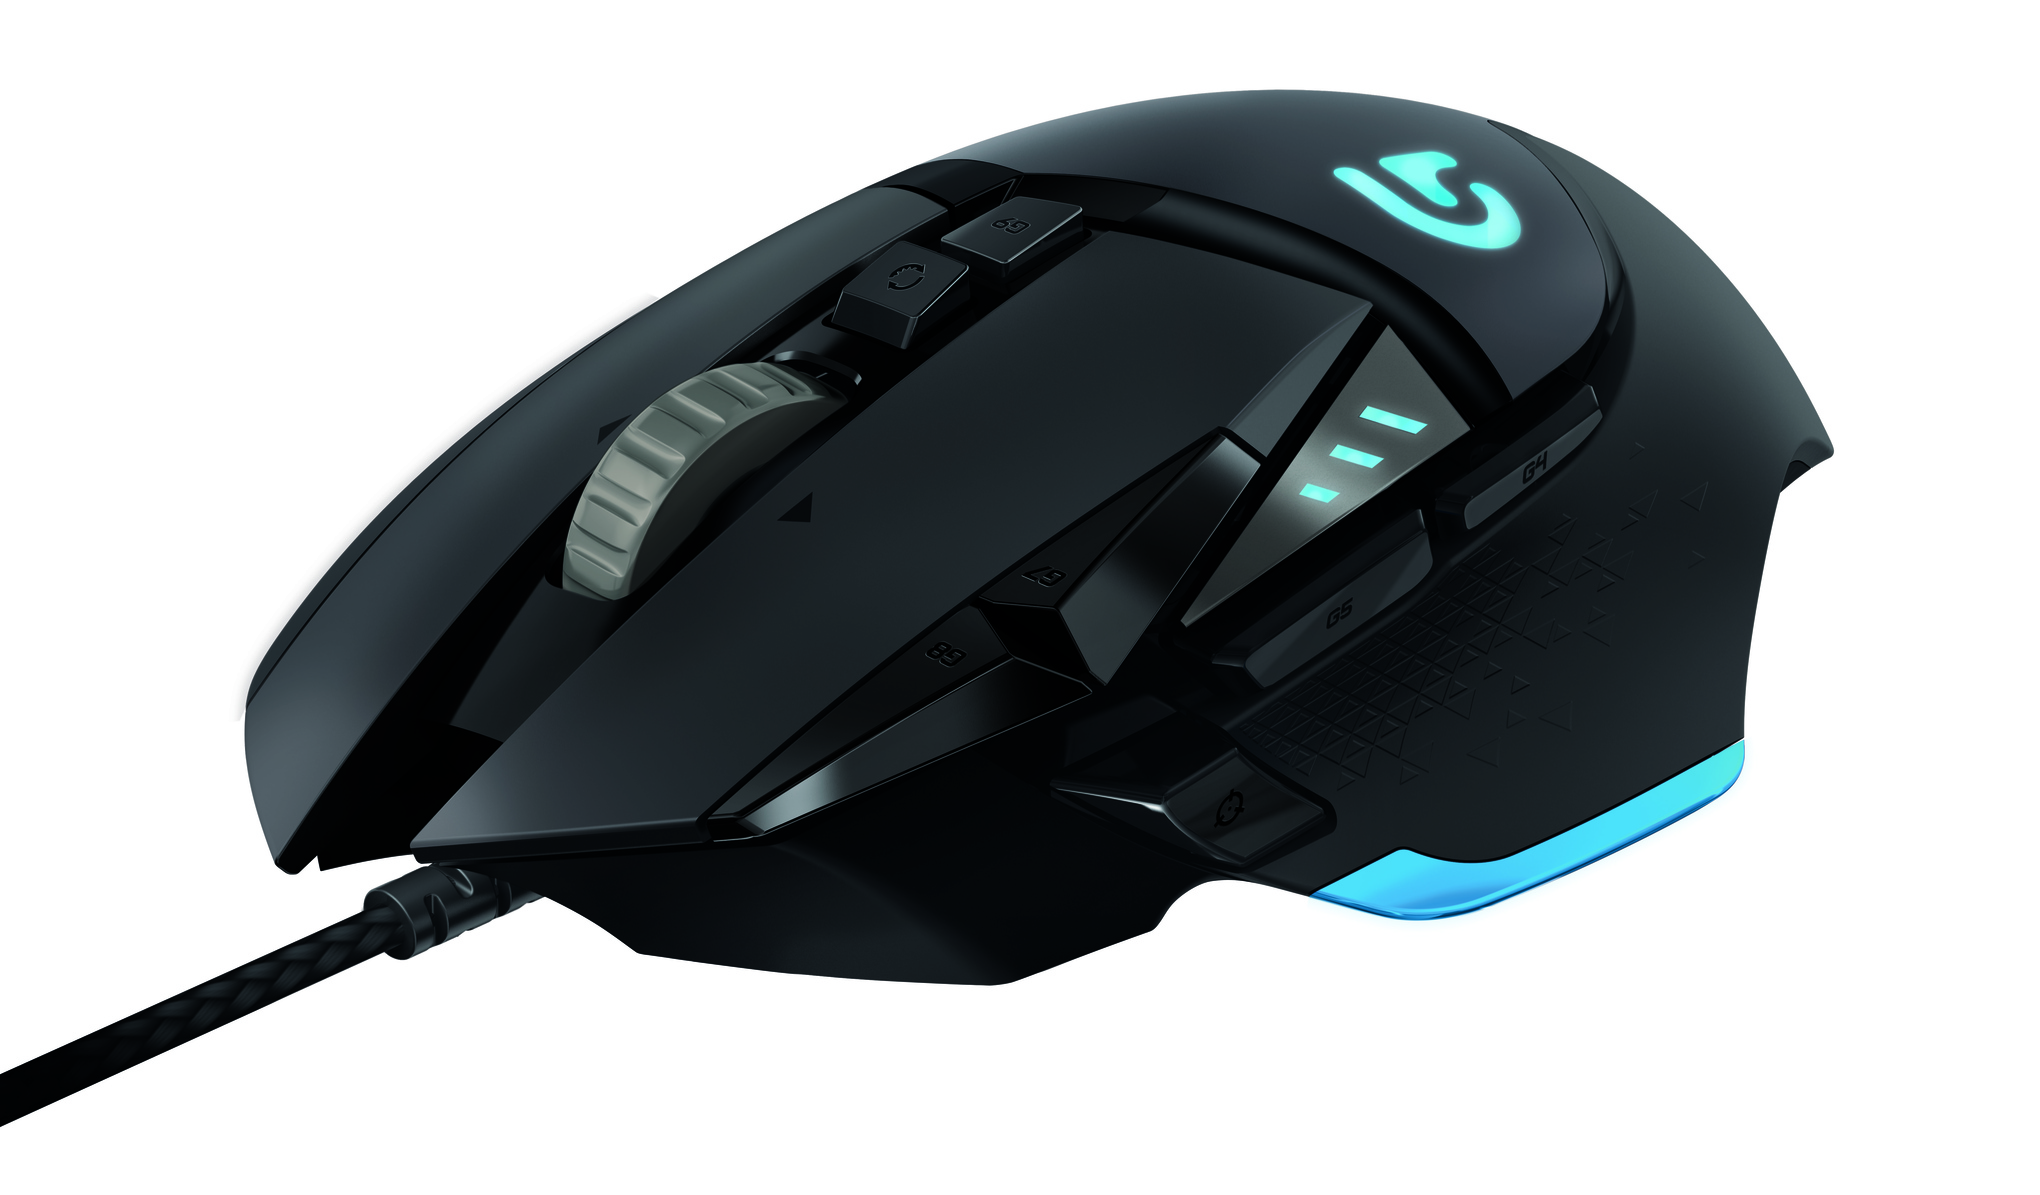 Logitech's G502 Proteus Core tunable gaming mouse with 12,000 DPI sensor hits in April